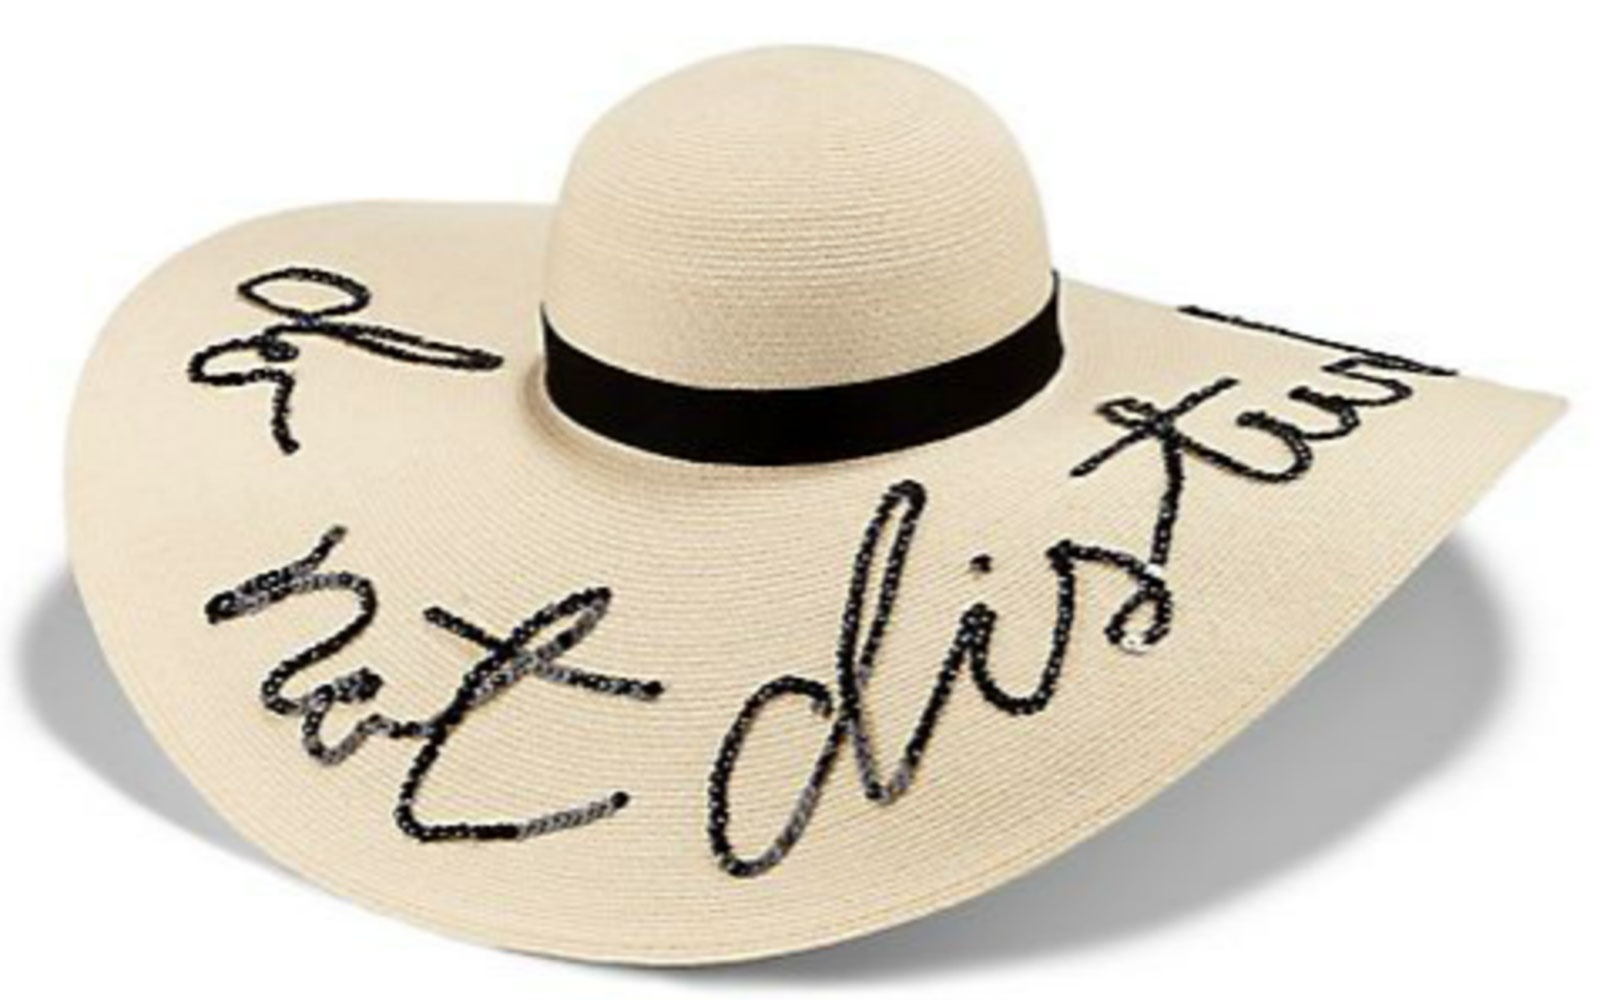 Eugenia Kim  Do Not Disturb  sun hat, $440